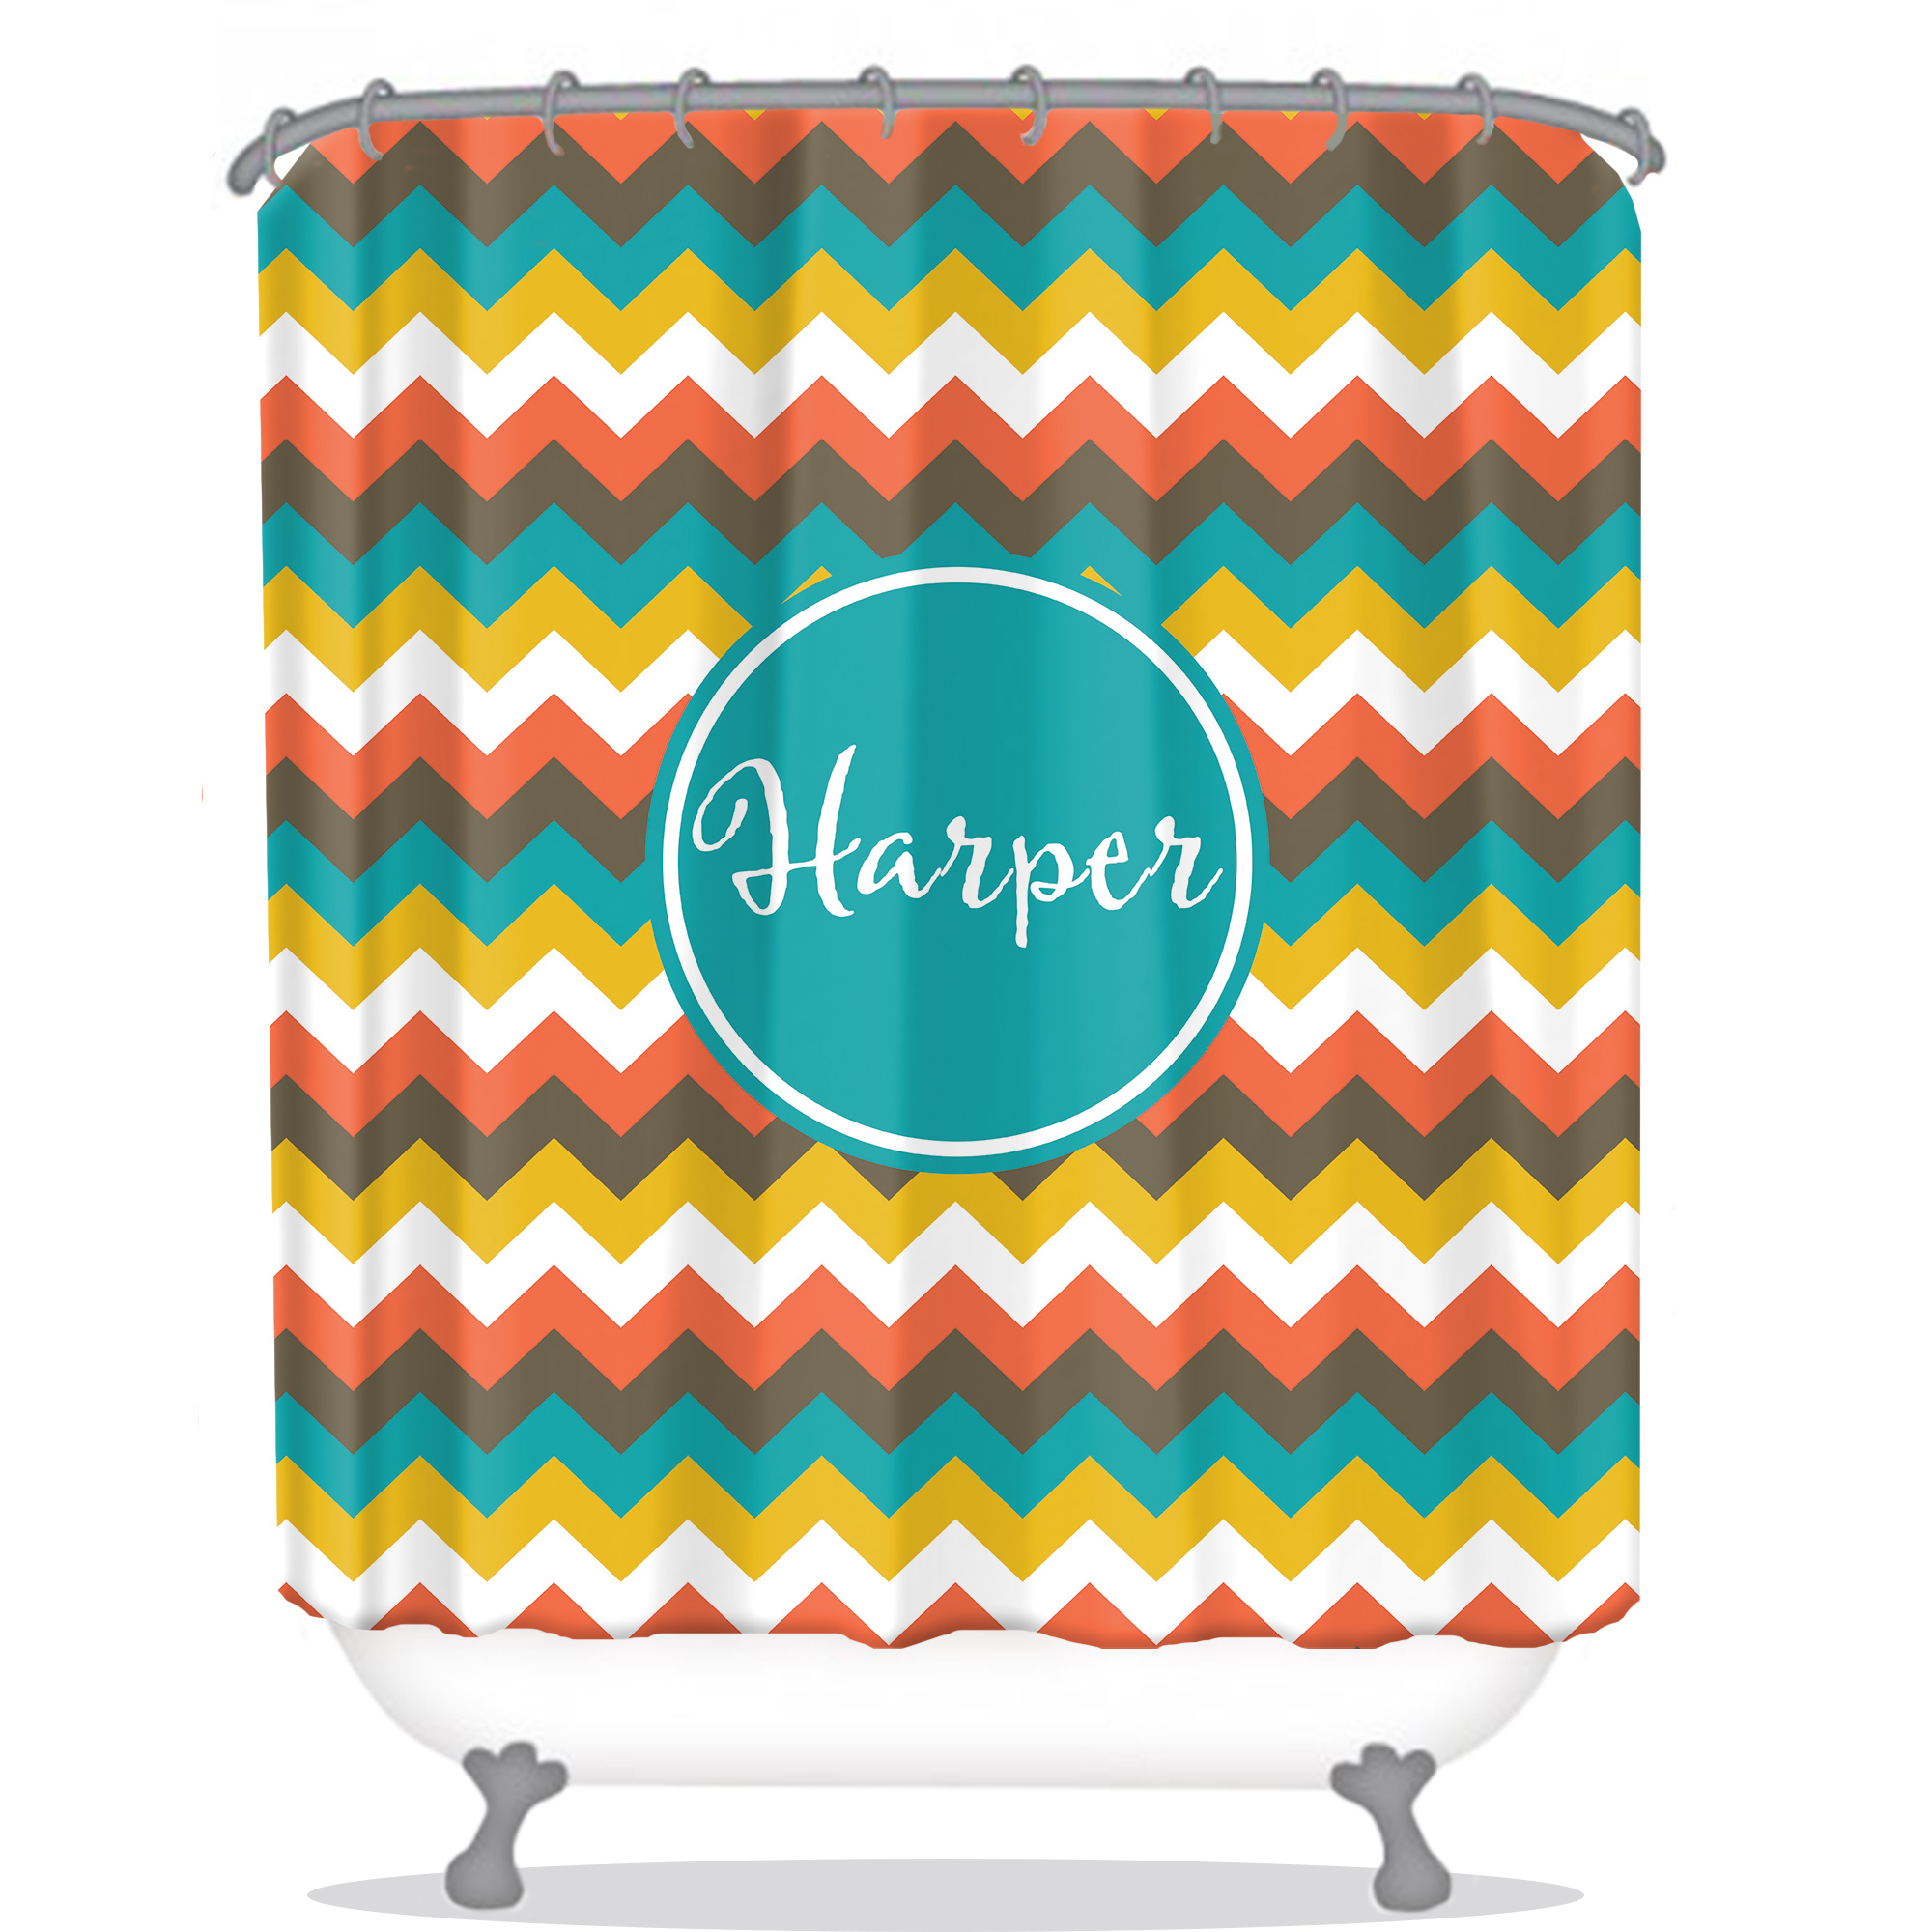 Chevron Personalized Shower Curtain | Monogrammed Shower Curtain ...